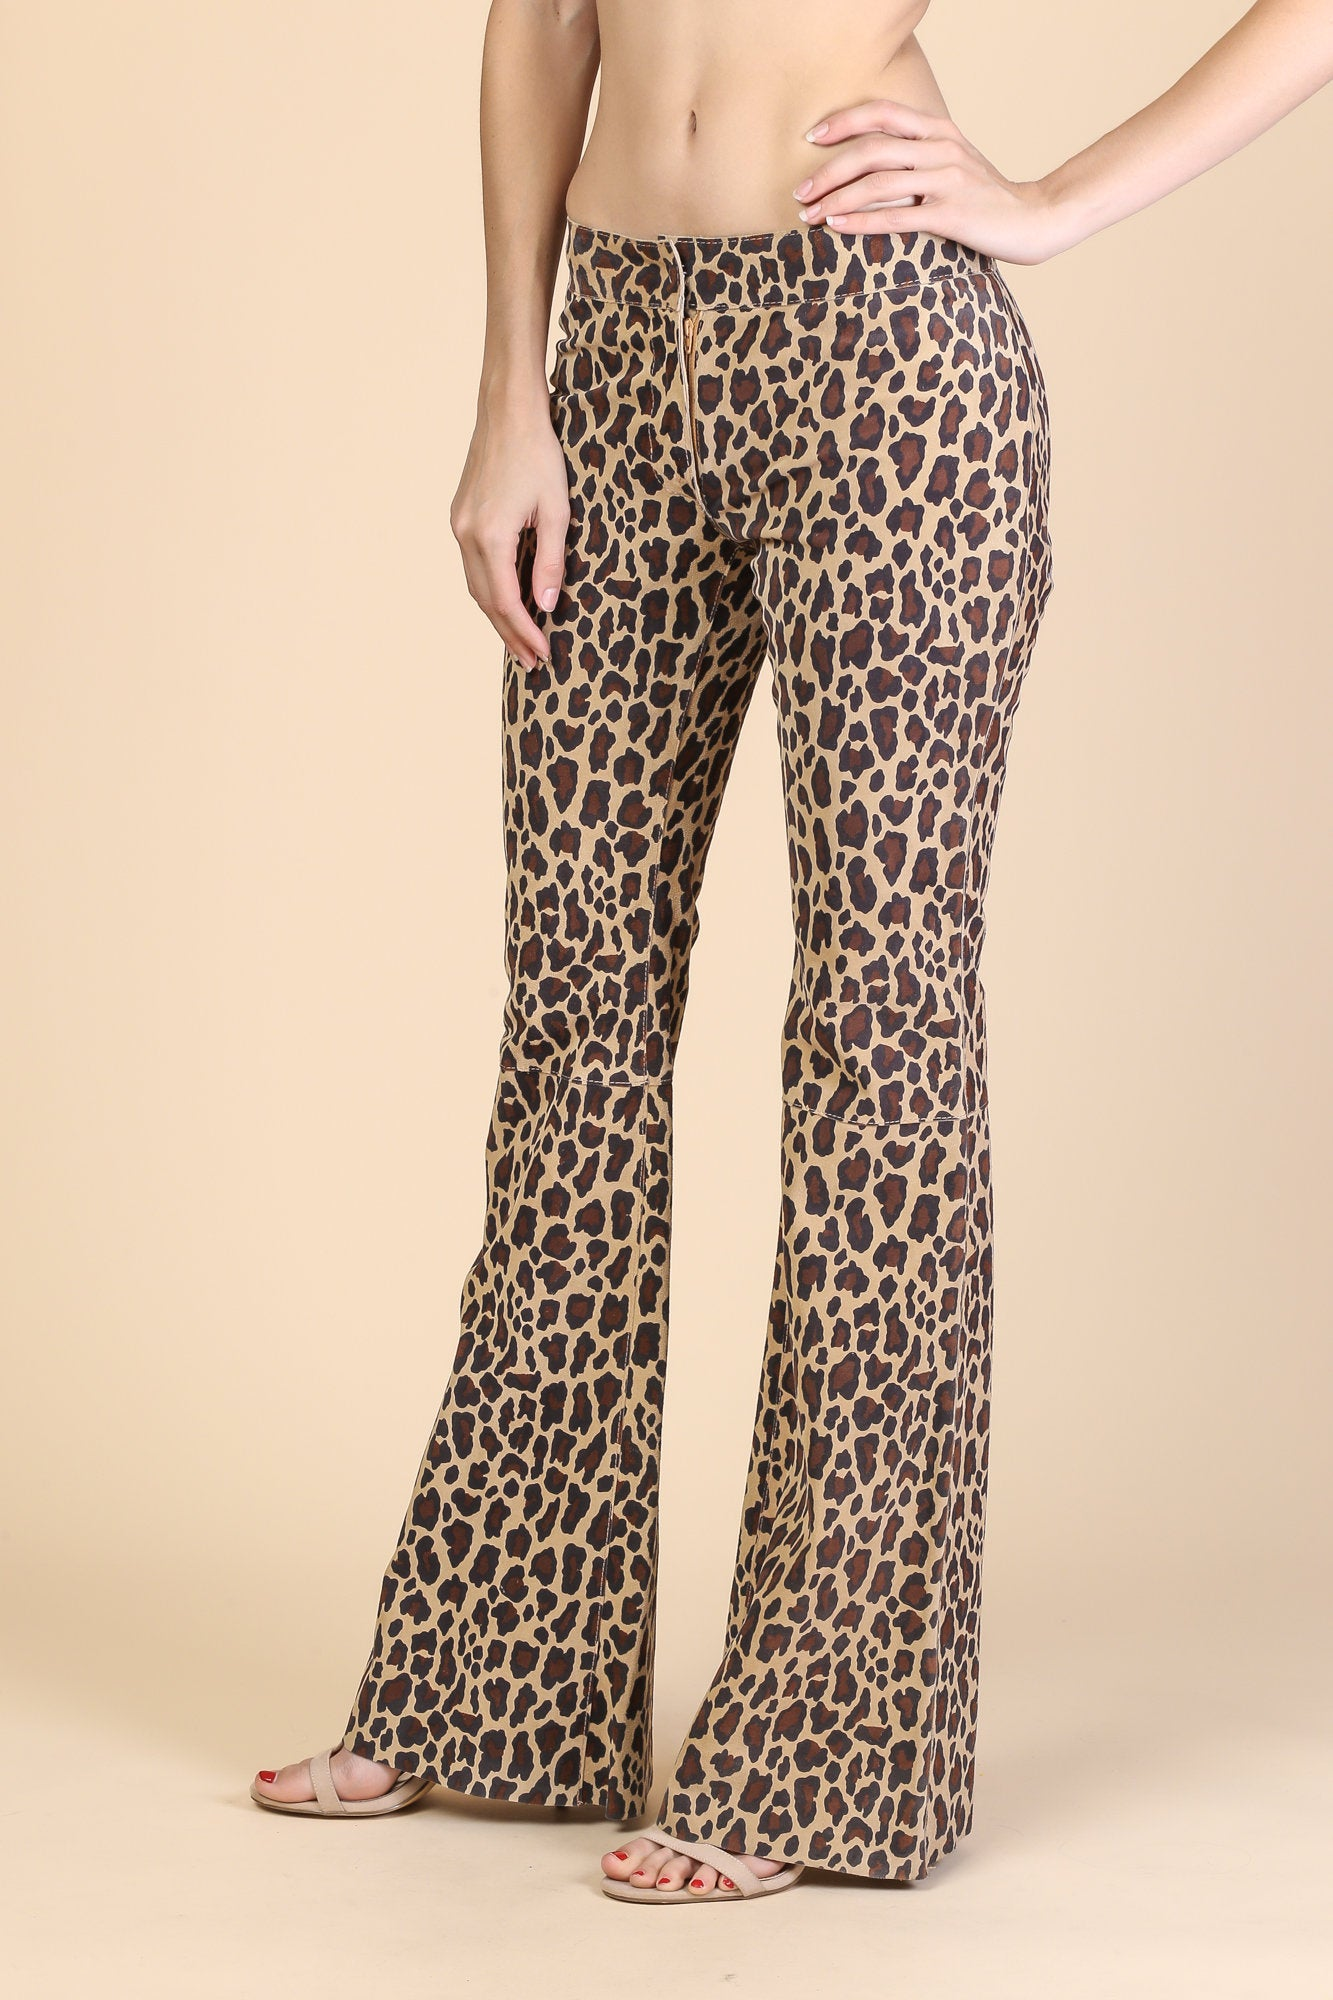 Vintage Dolce and Gabbana Suede Leather Flared Leopard Print Pants - Extra Small